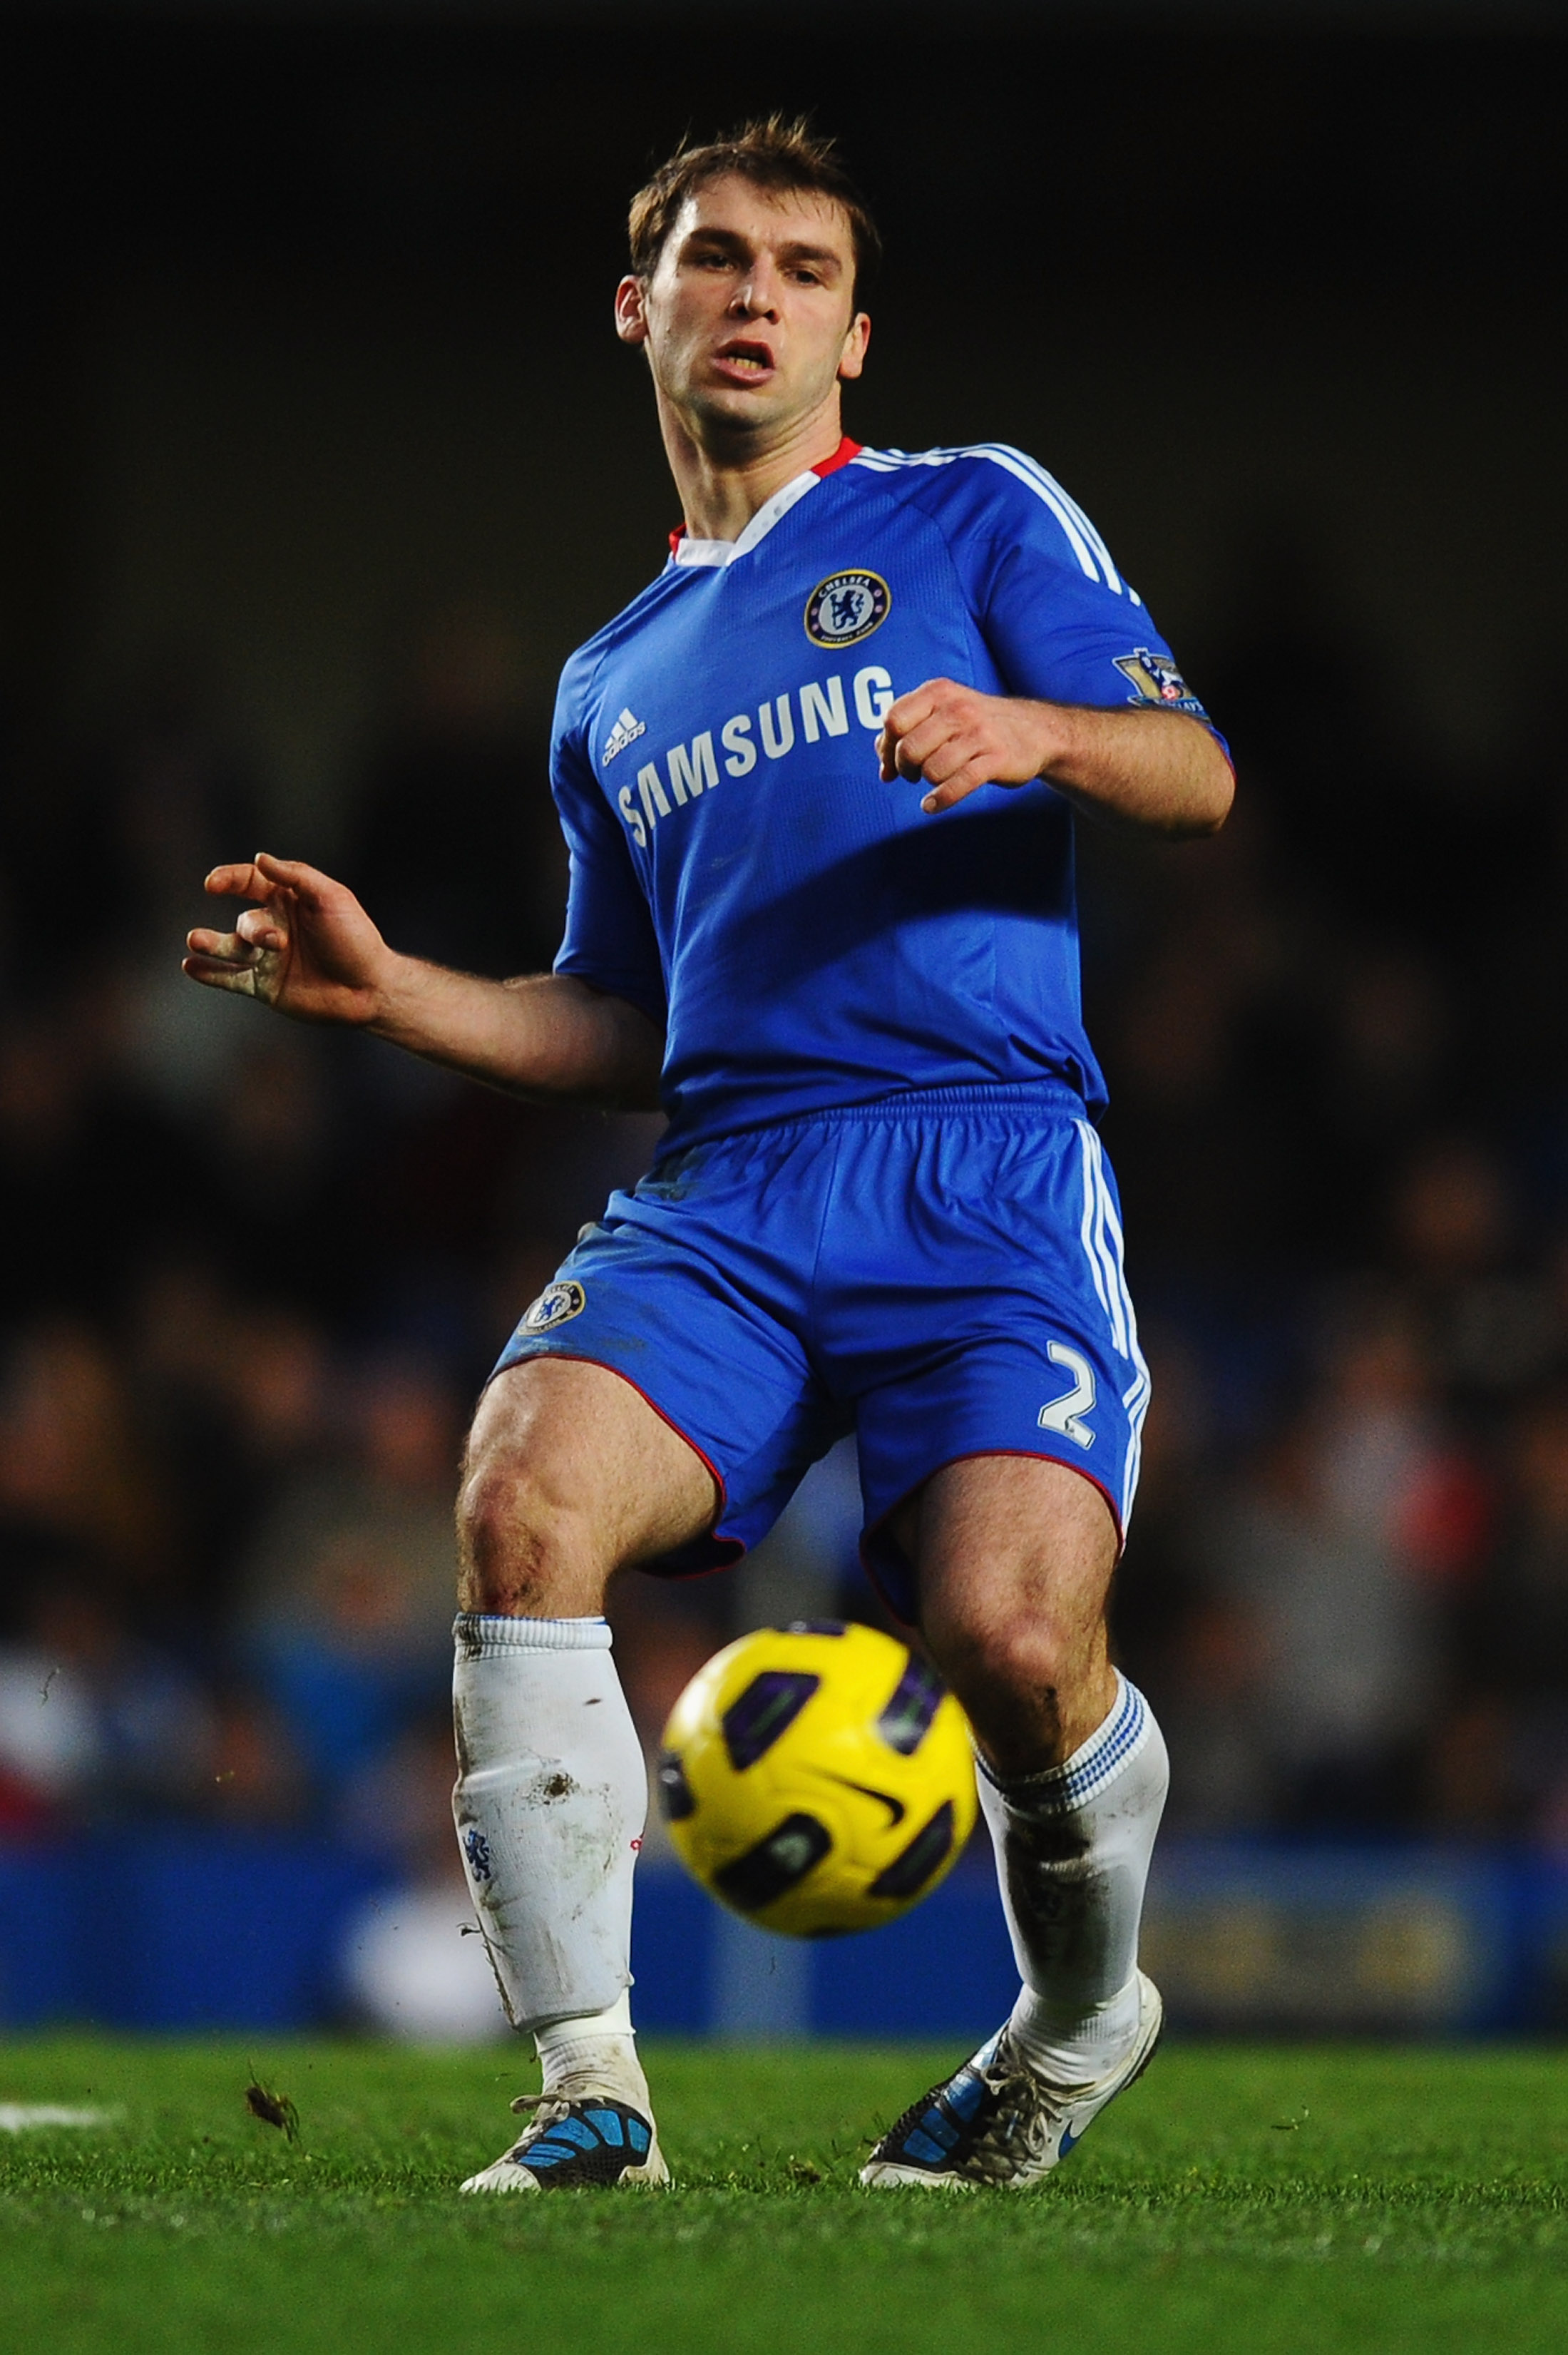 LONDON, ENGLAND - JANUARY 15:  Branislav Ivanovic of Chelsea in action during the Barclays Premier League match between Chelsea and Blackburn Rovers at Stamford Bridge on January 15, 2011 in London, England.  (Photo by Mike Hewitt/Getty Images)